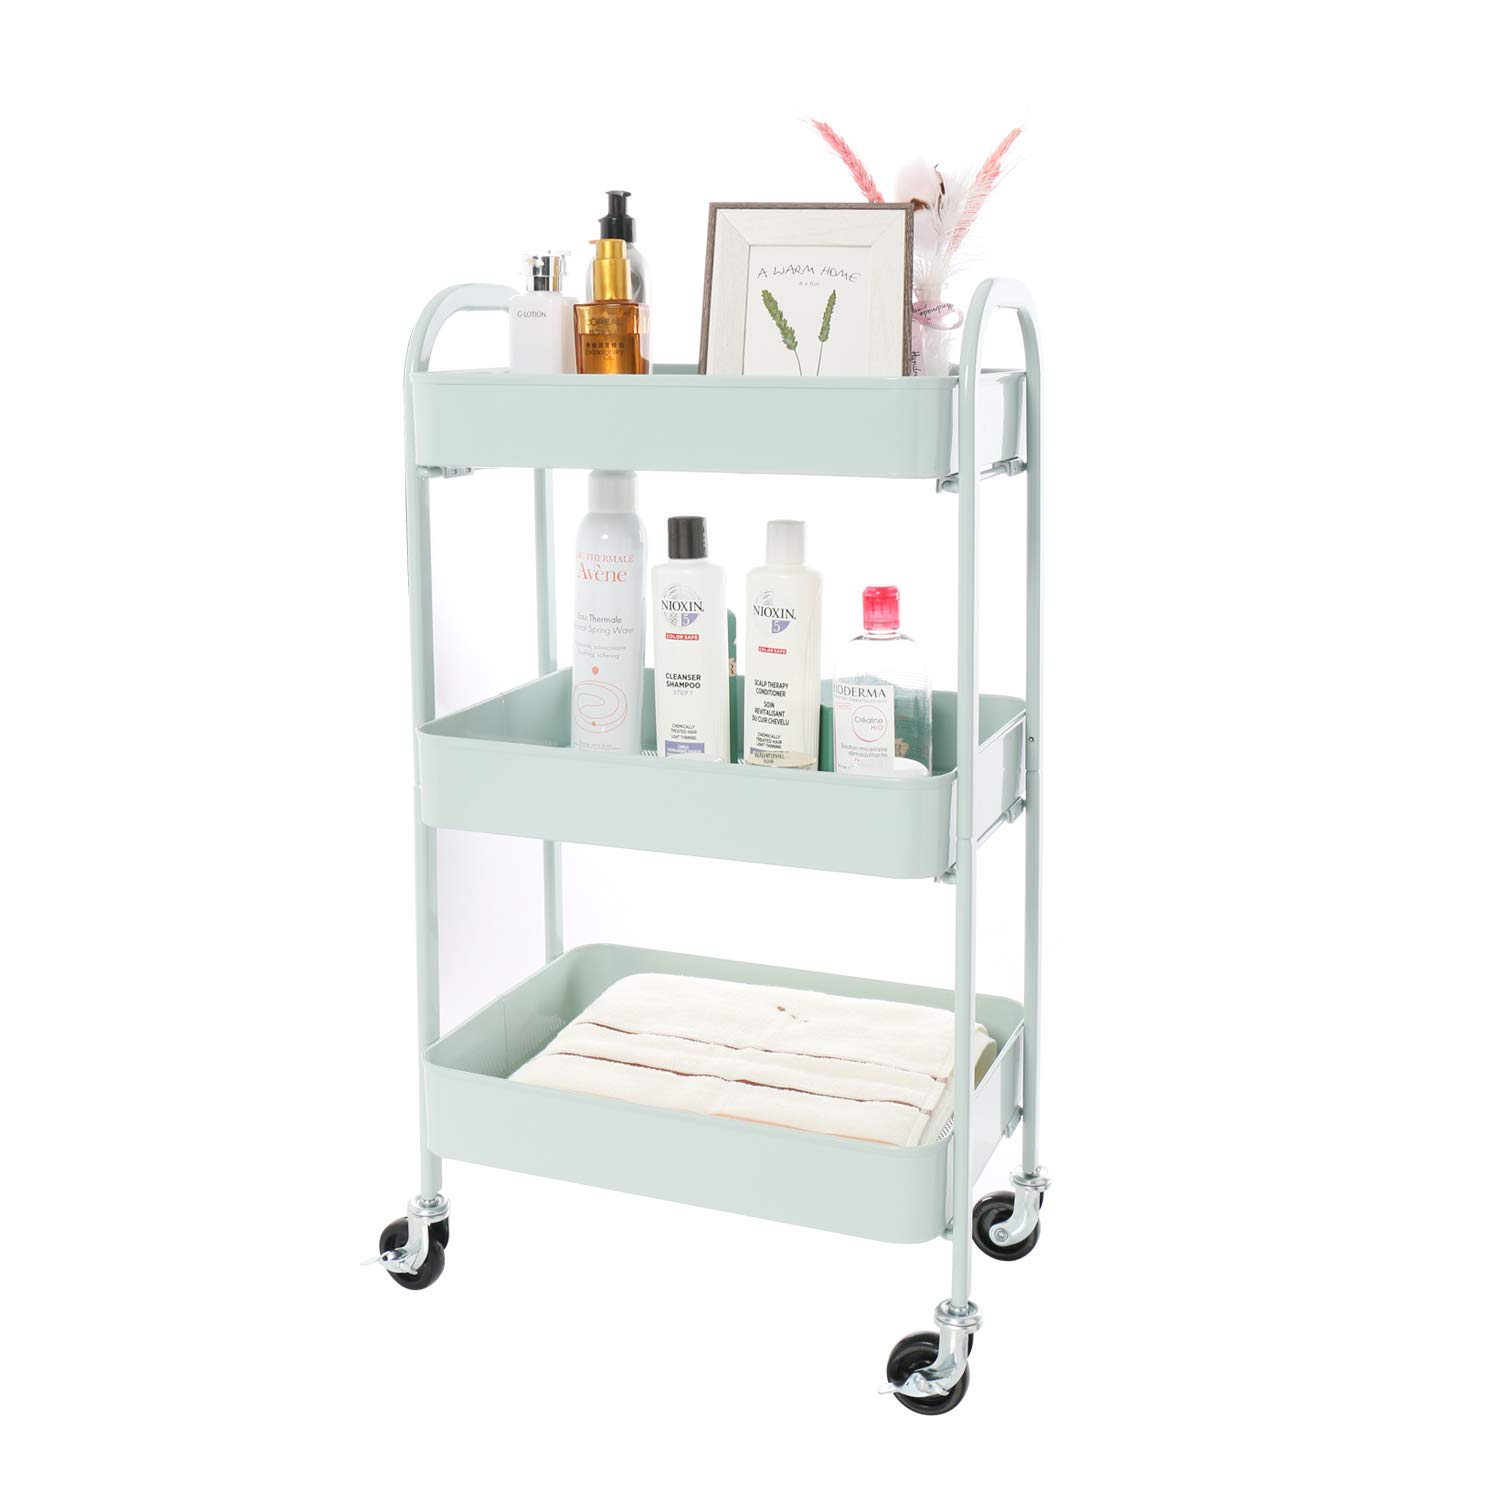 YOURLITE 3 Tier Metal Rolling Cart Organizer with Wheels w 2 Brakes Bathroom Cart with Handle 3 Tier Utility Cart with Span-on Design, No Bolts or Screws Installation Way, Light Green